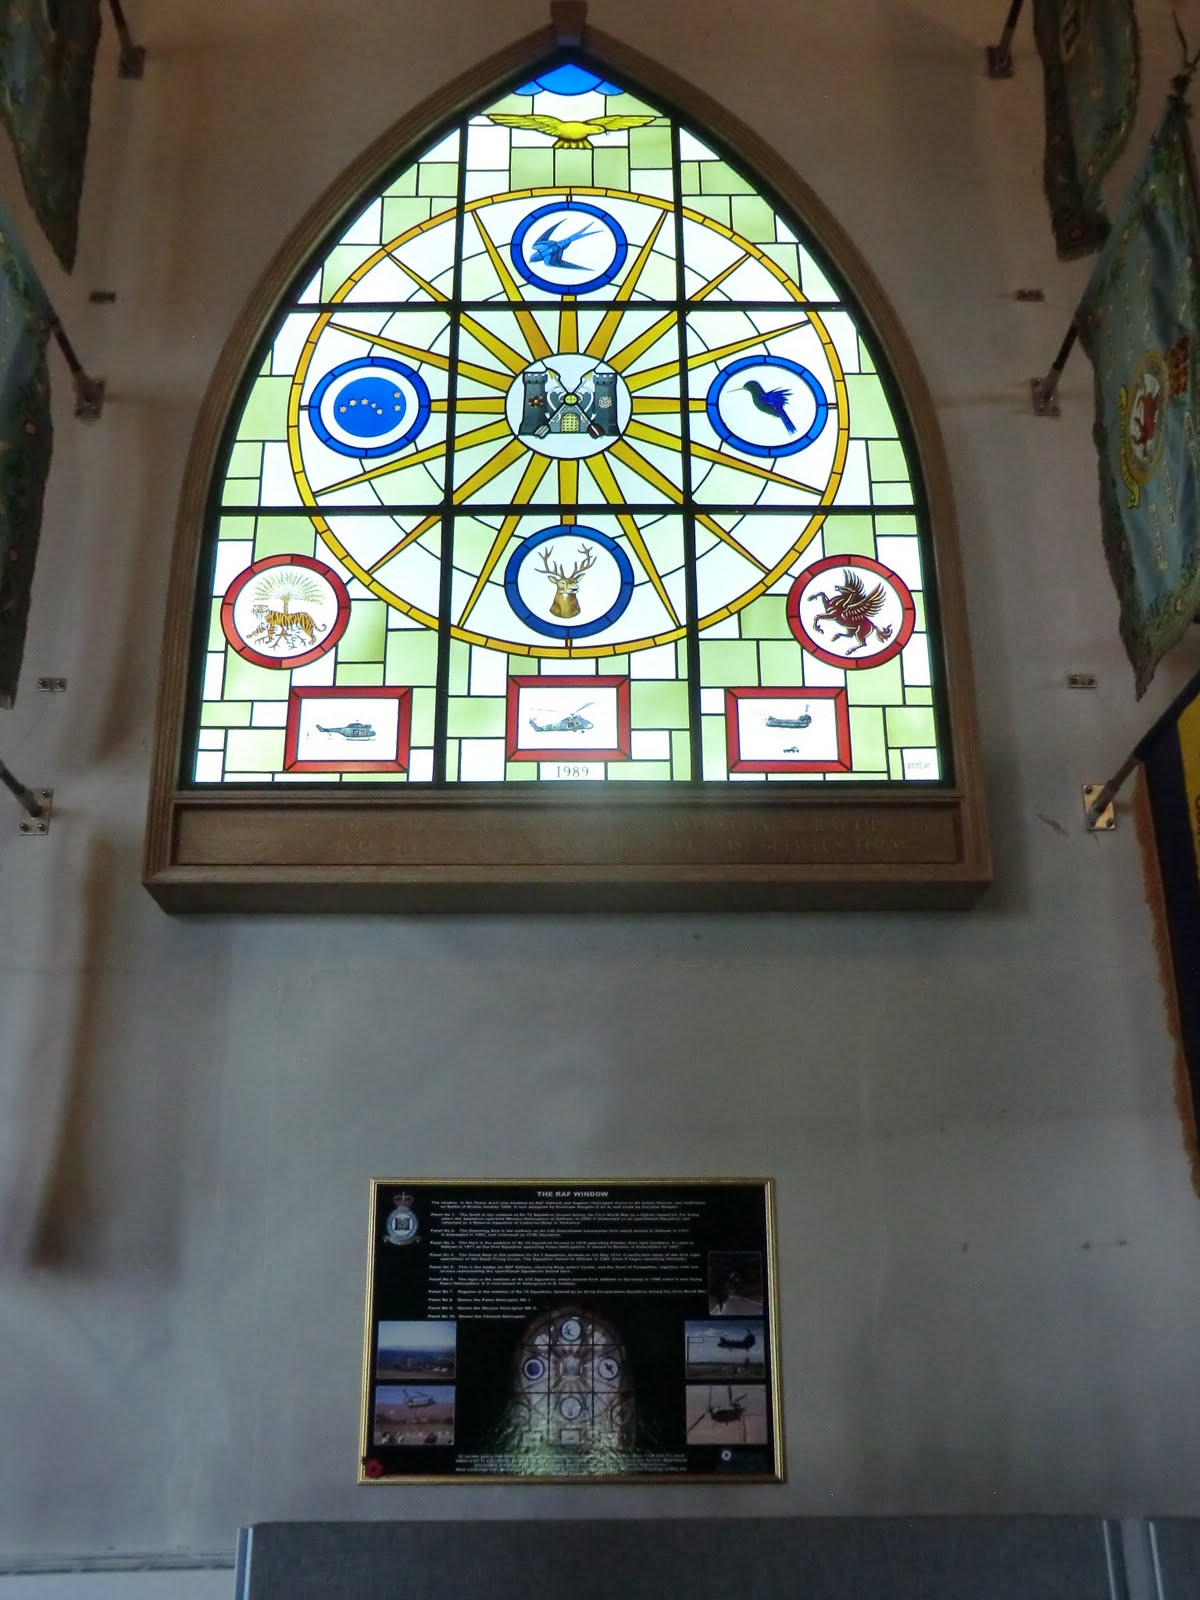 CIMG8804 RAF window, Odiham church